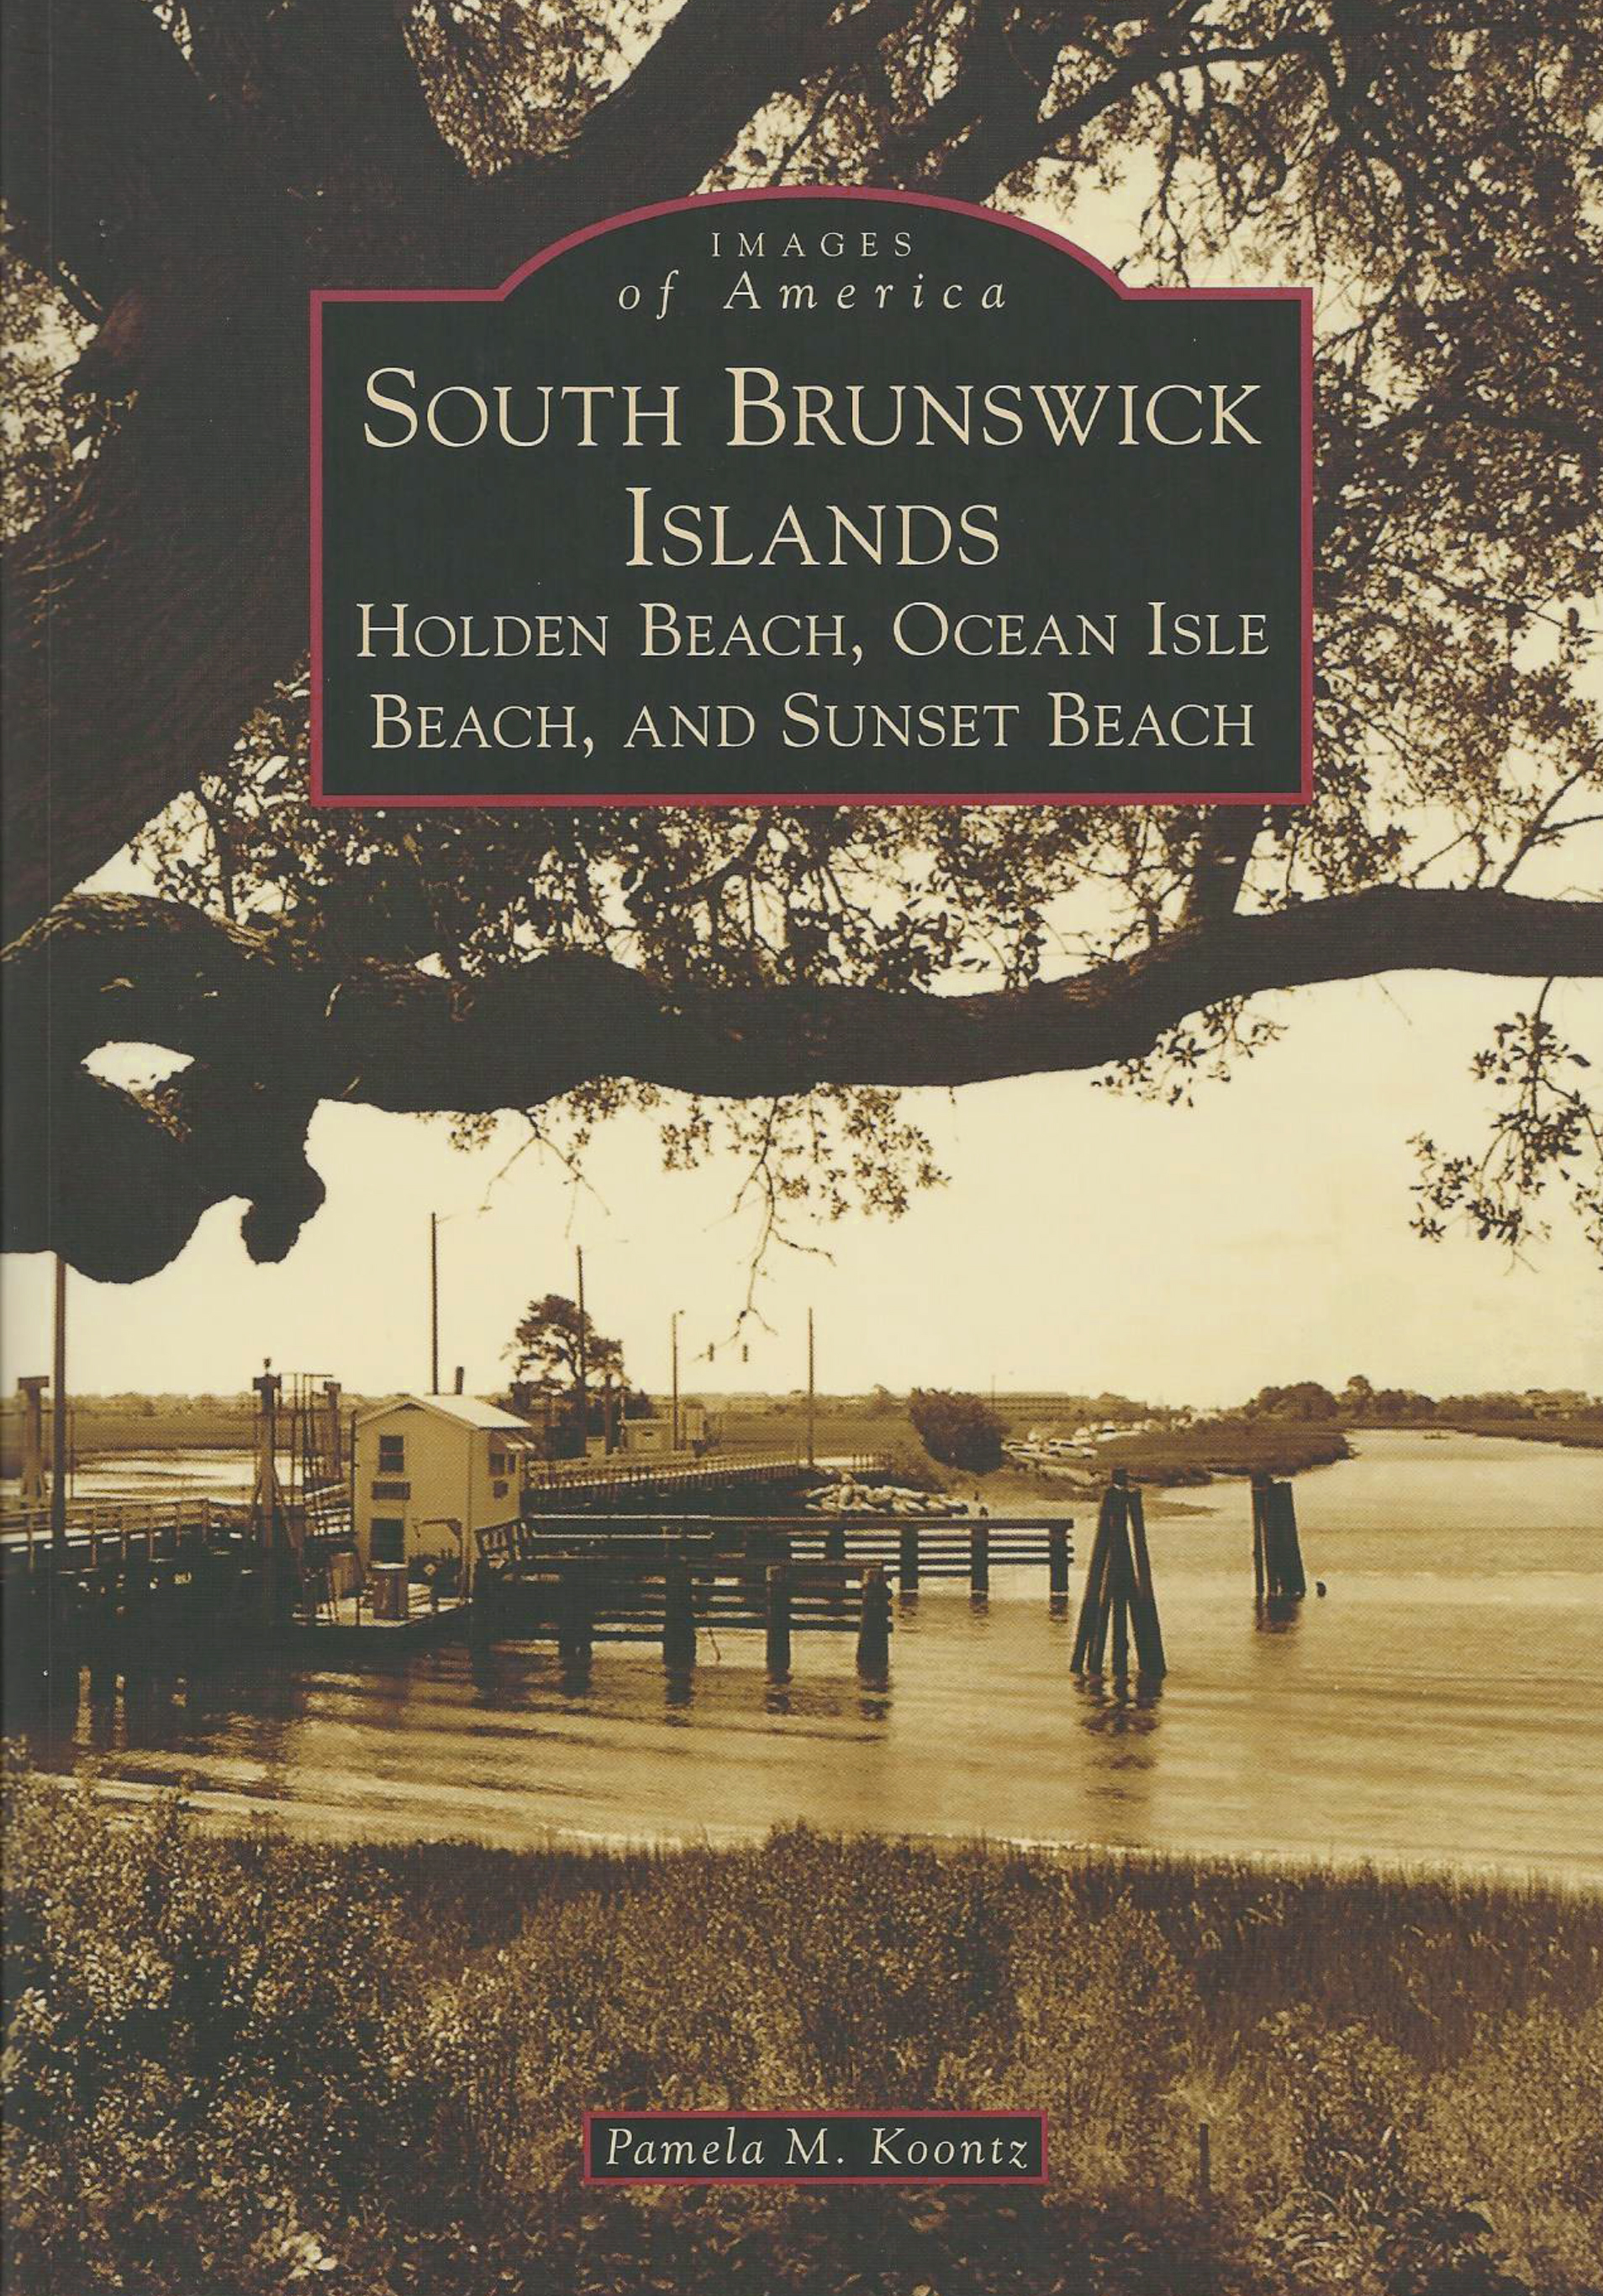 New ocean isle beach history book released ocean isle beach new ocean isle beach history book released ocean isle beach north carolina oceanislebeach nvjuhfo Choice Image